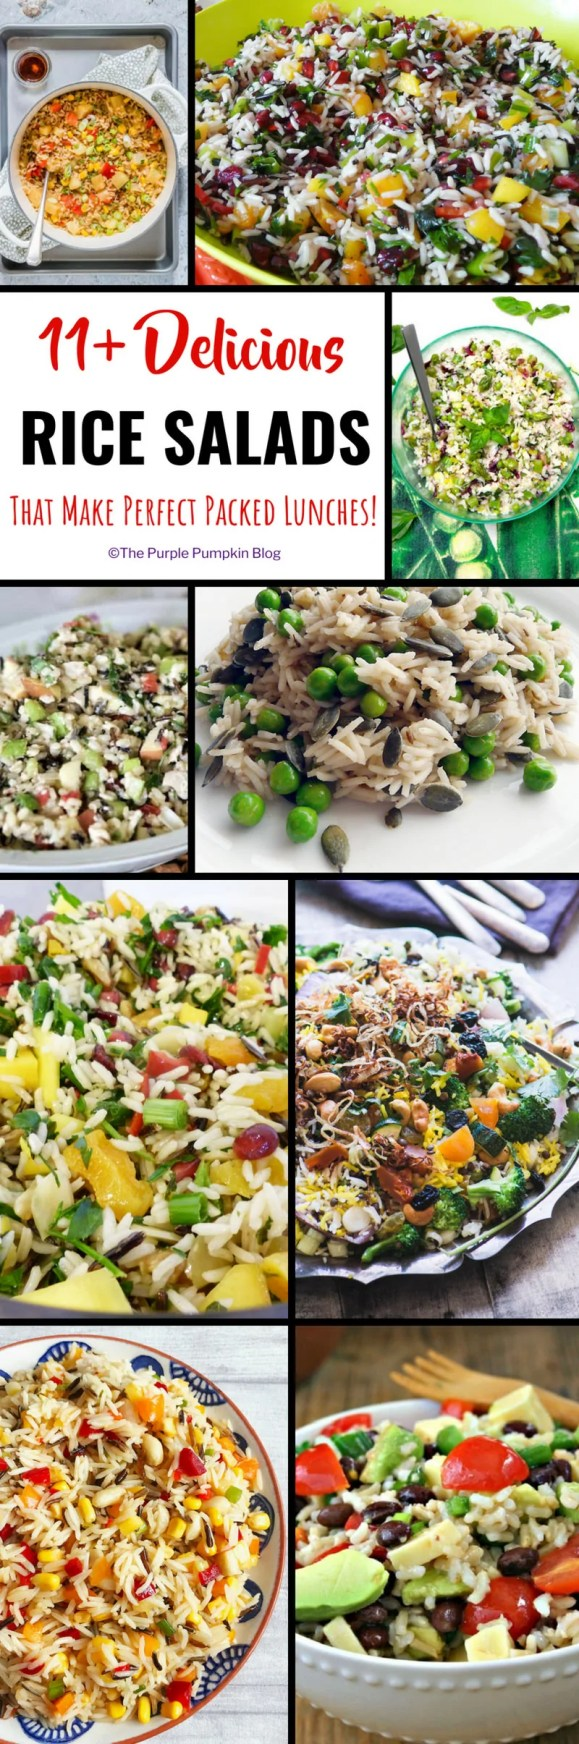 Do you find yourself having the same food for lunch, day in, day out? Stuck for ideas of what to prepare for packed lunches for work? You've hit the right spot on the internet because here are 11+ delicious rice salads that can be kept in a packed lunch box or mason jar to take on the go.